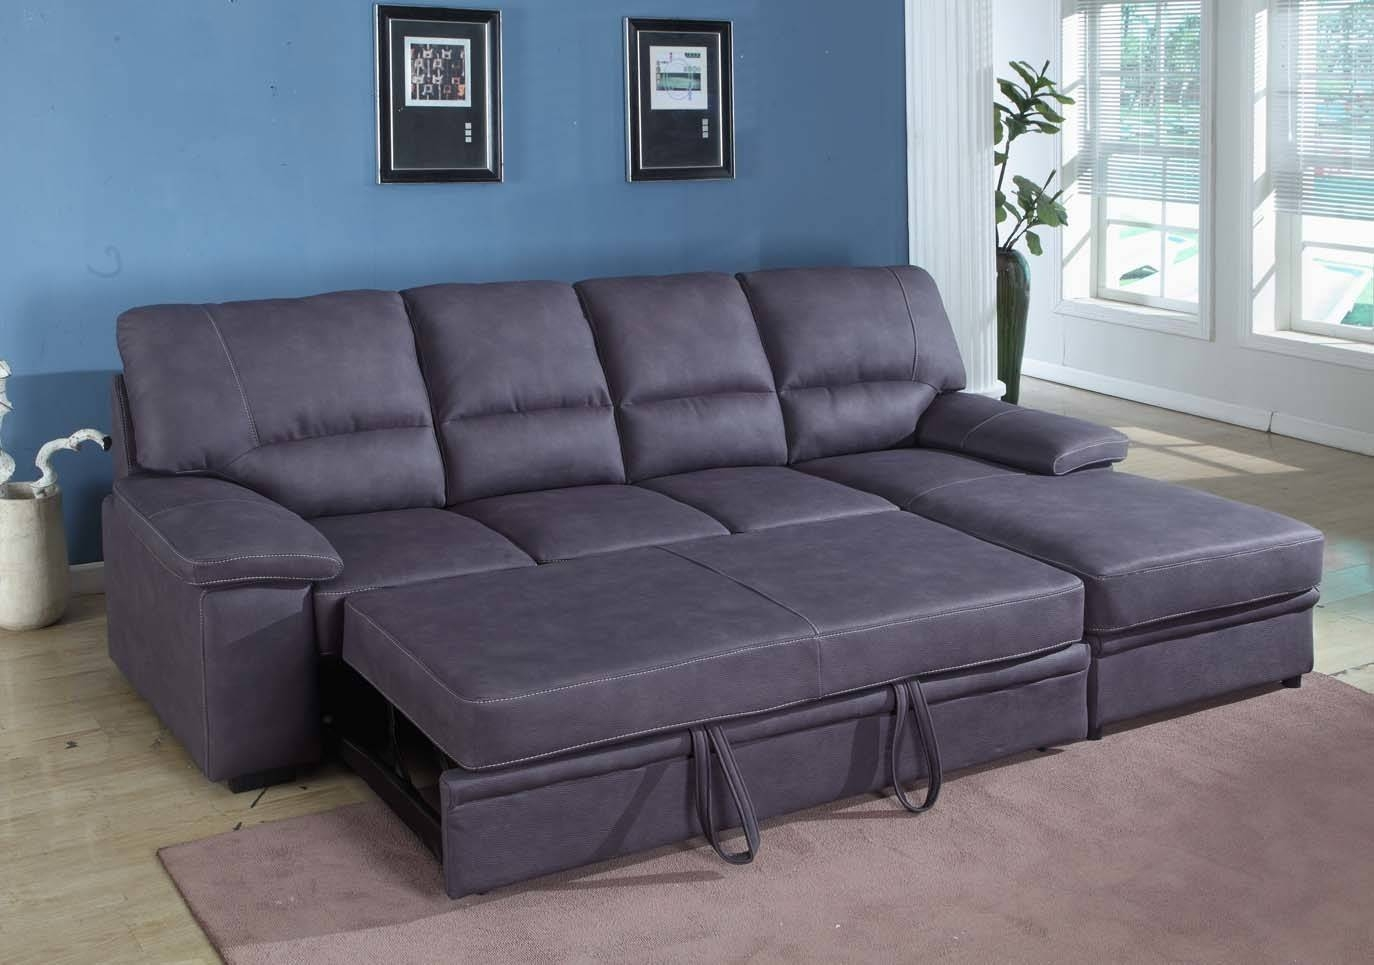 Captivating Queen Sleeper Sofa Ikea Marvelous Home Design pertaining to Cheap Sofas Houston (Image 5 of 30)